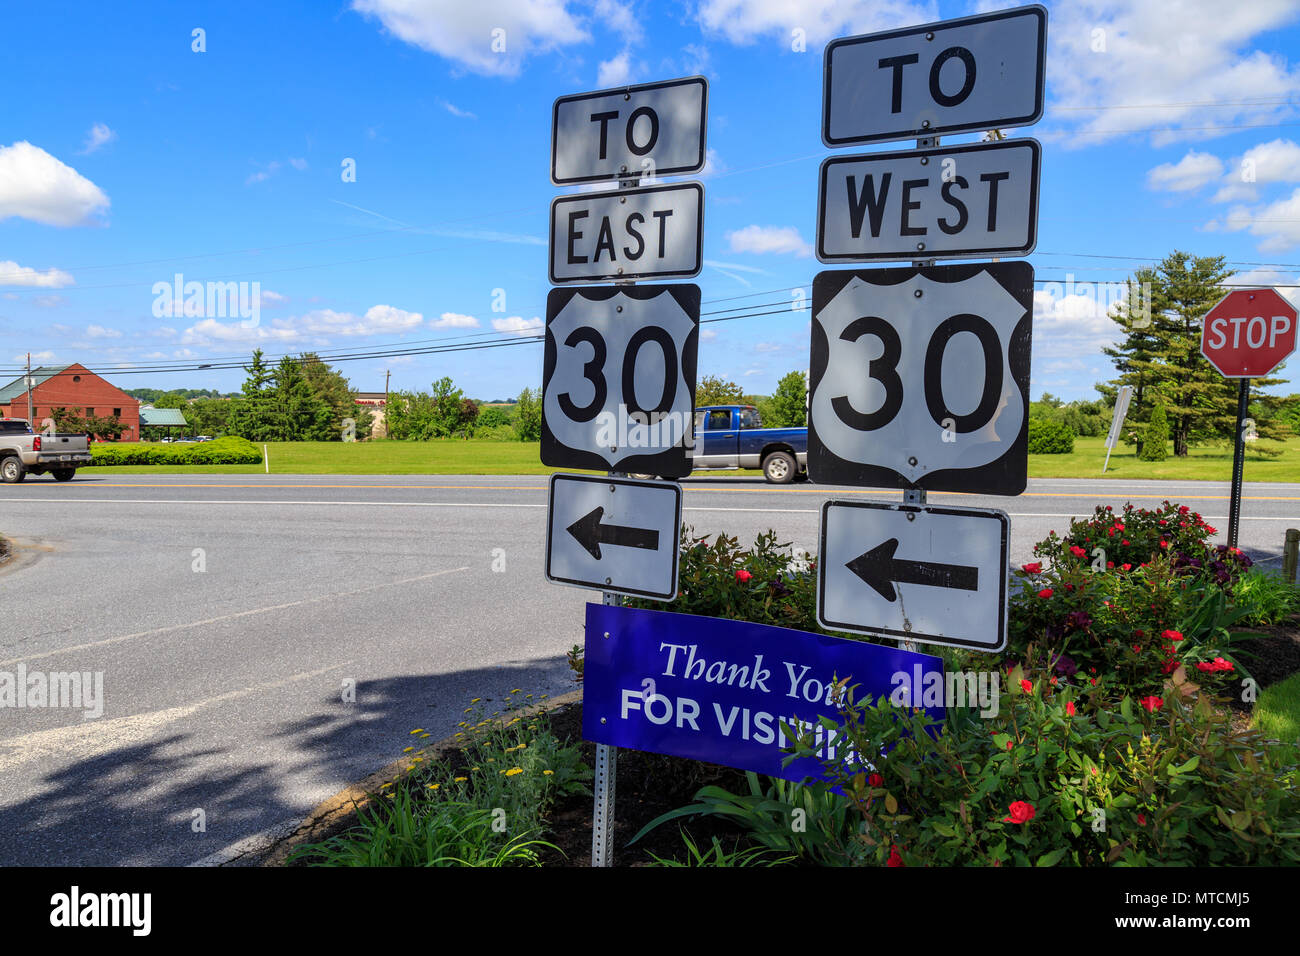 lancaster, pa, usa - may 23, 2018: directional signs to us route 30